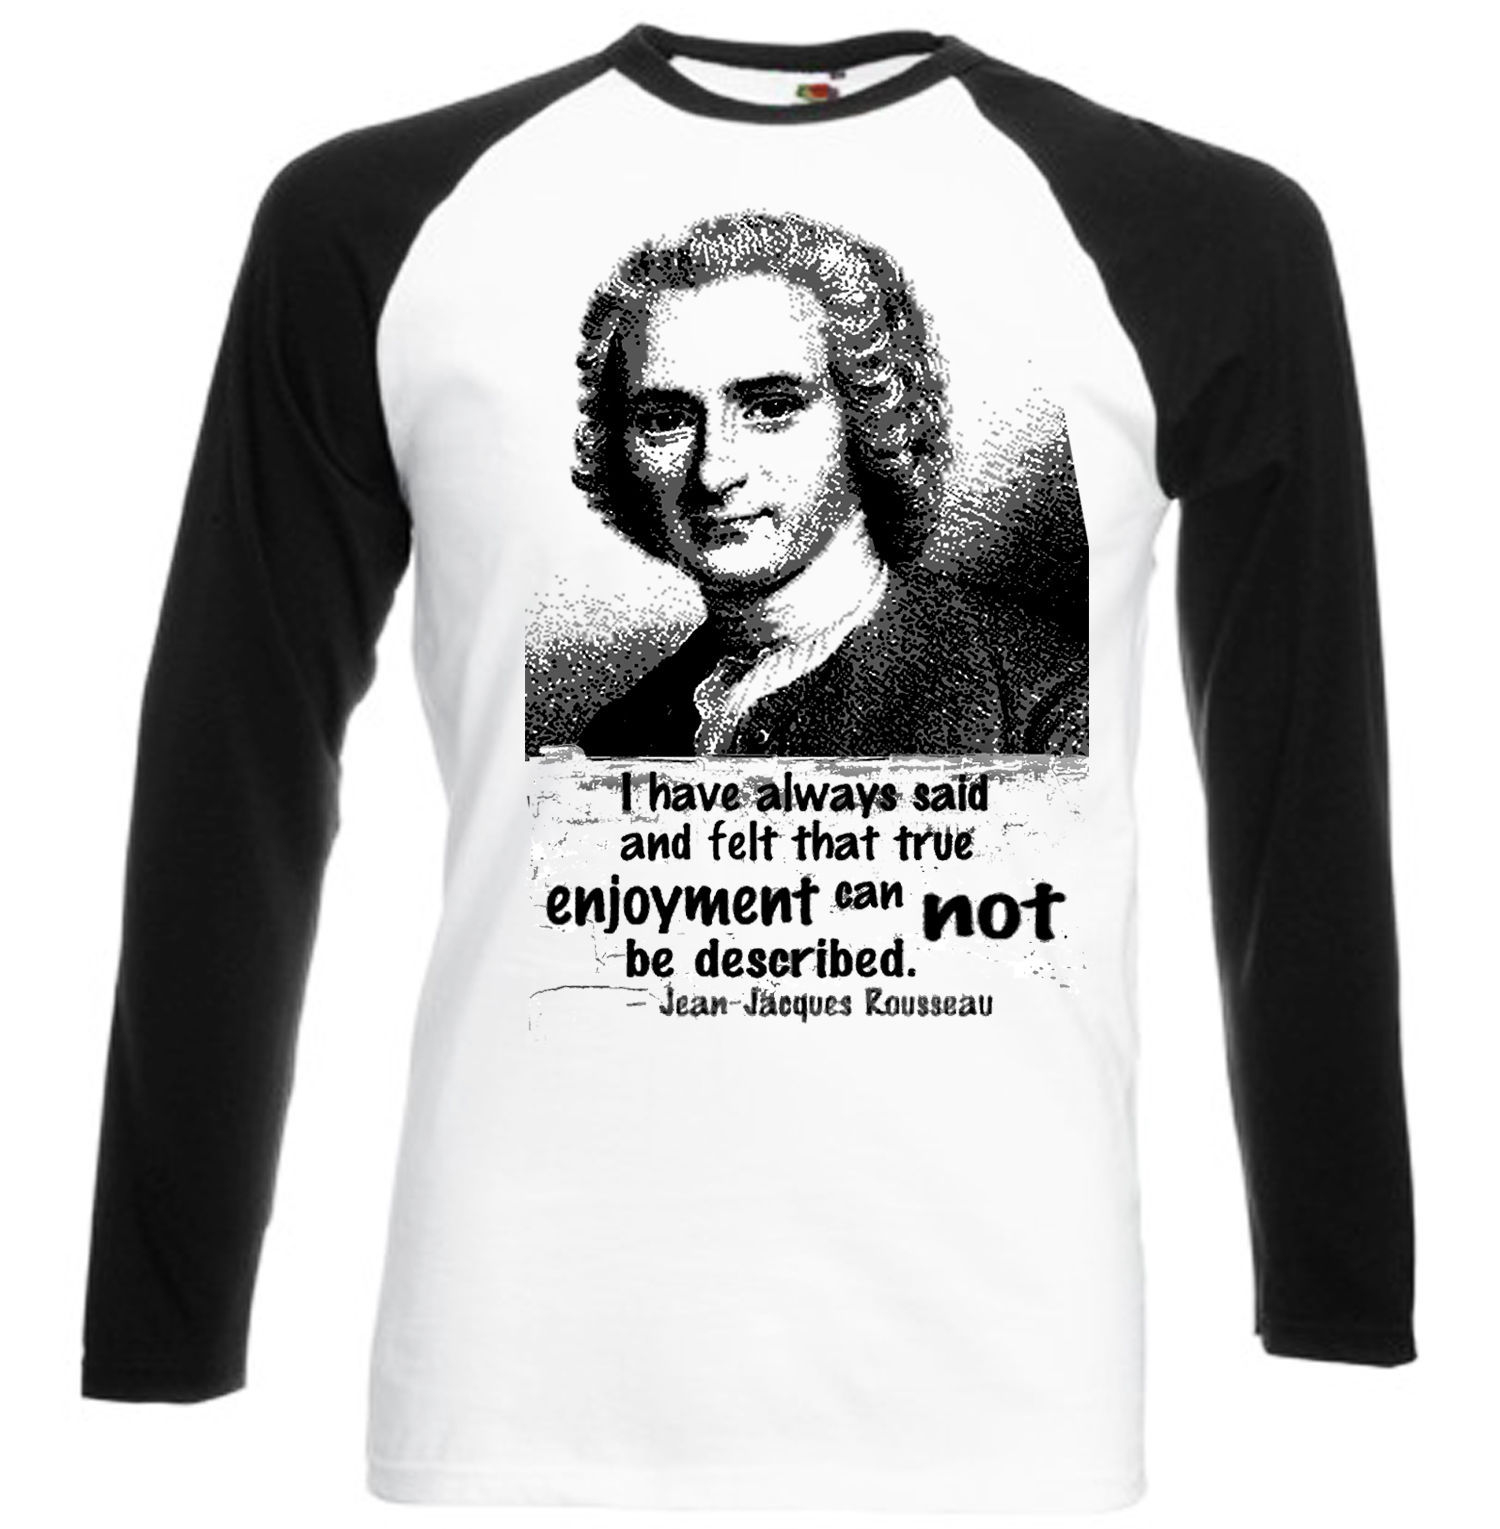 Primary image for JEAN JACQUOES ROUSSEAU QUOTE  - NEW BASEBALL TSHIRT S-M-L-XL-XXL